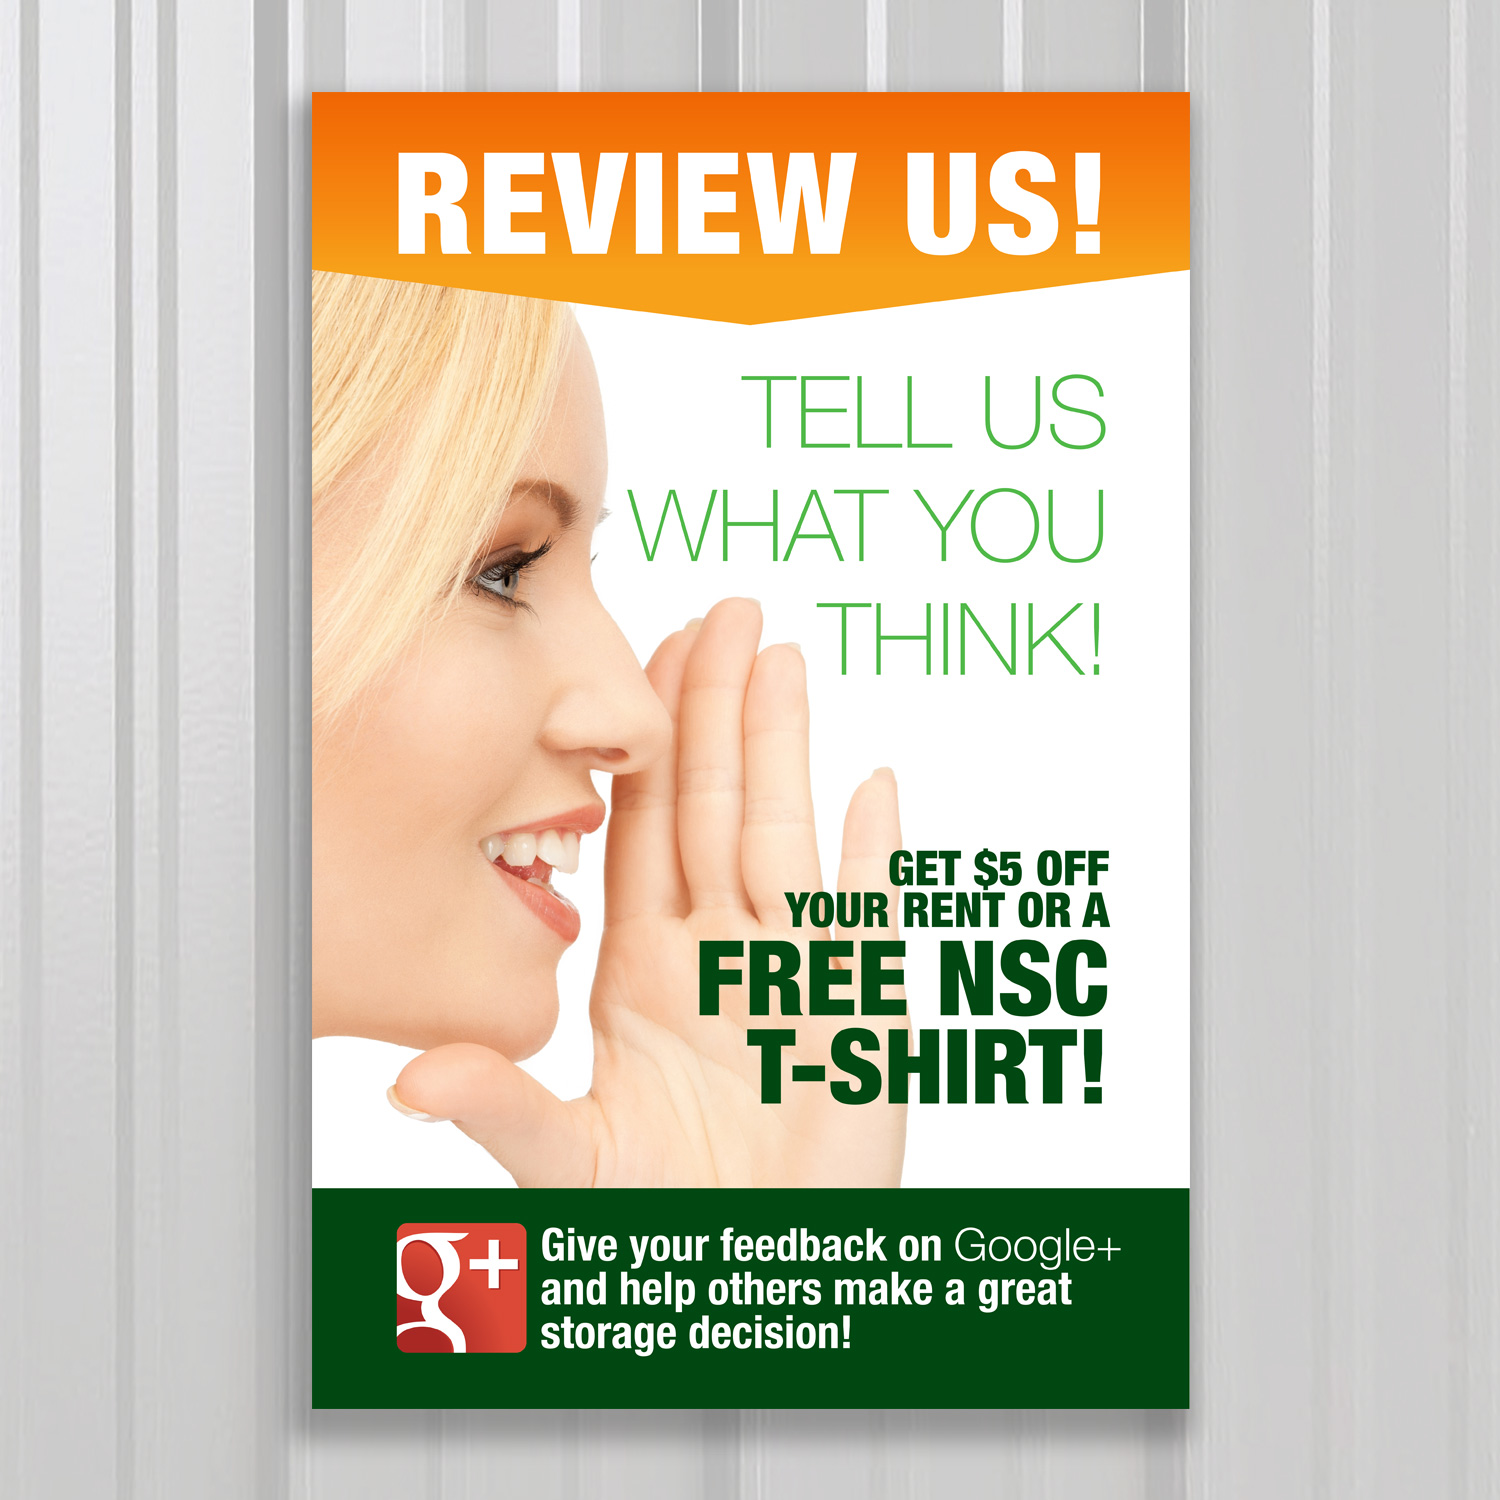 NSC-poster-reviewus.jpg